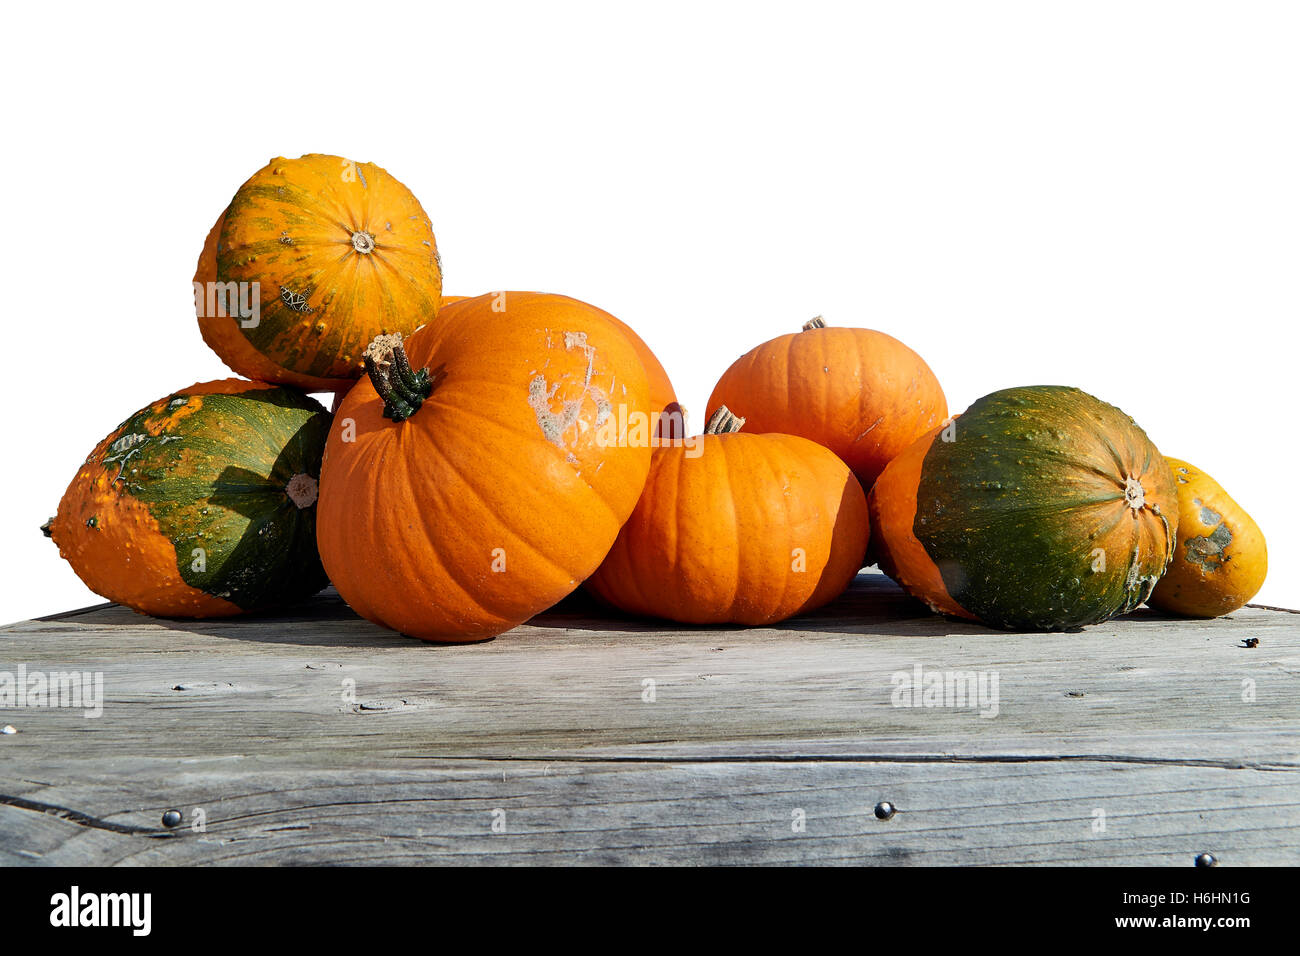 Assorted pumpkins and squashes on rustic wooden boards Stock Photo